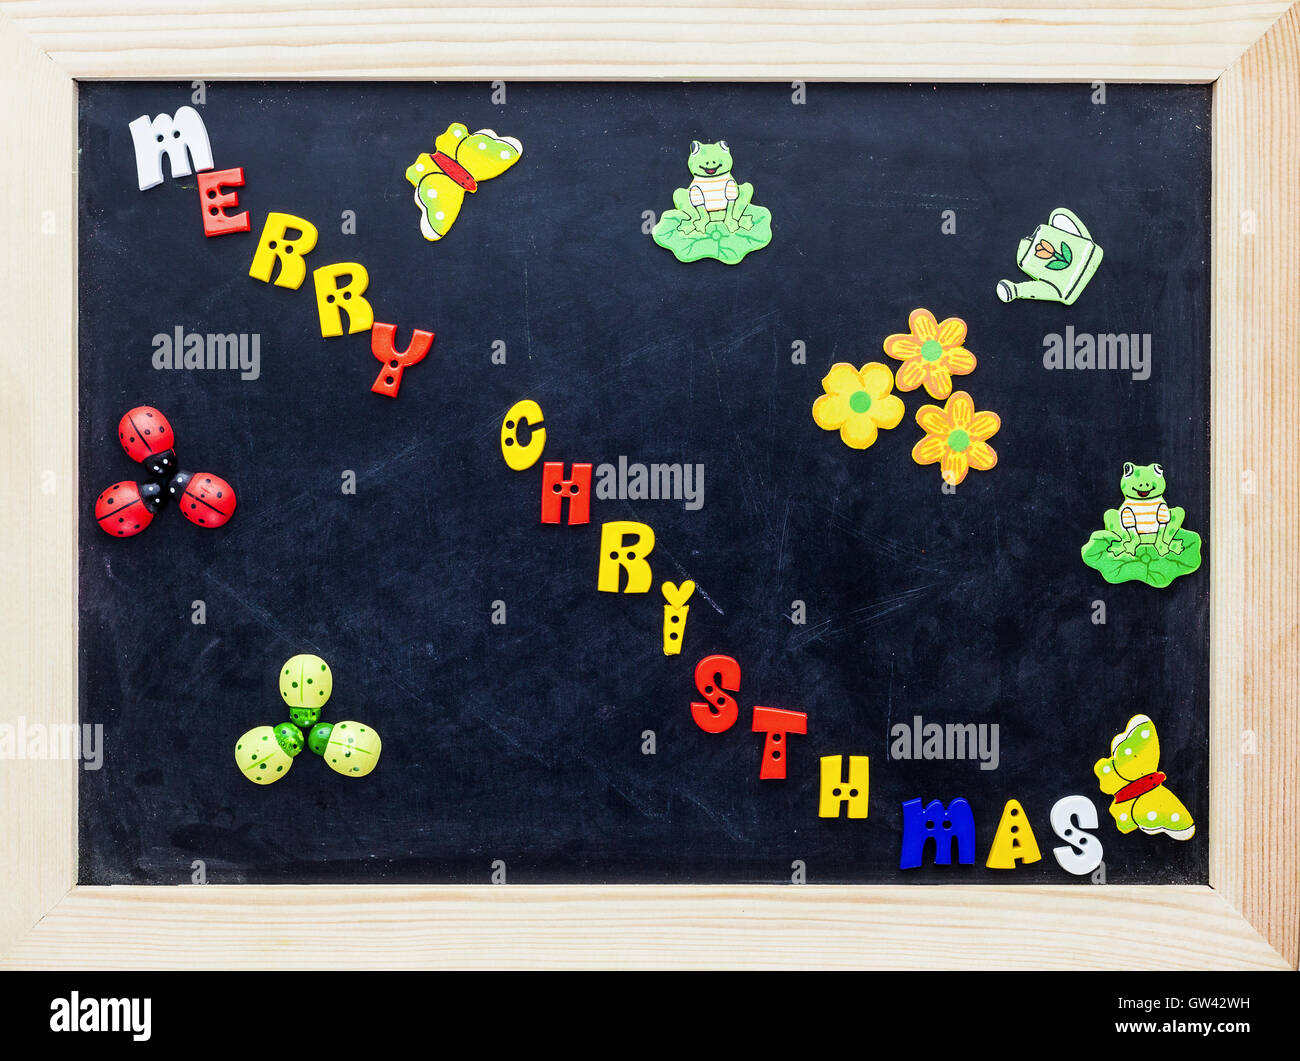 color merry christmas words on black board stock image - Merry Christmas In Greek Language